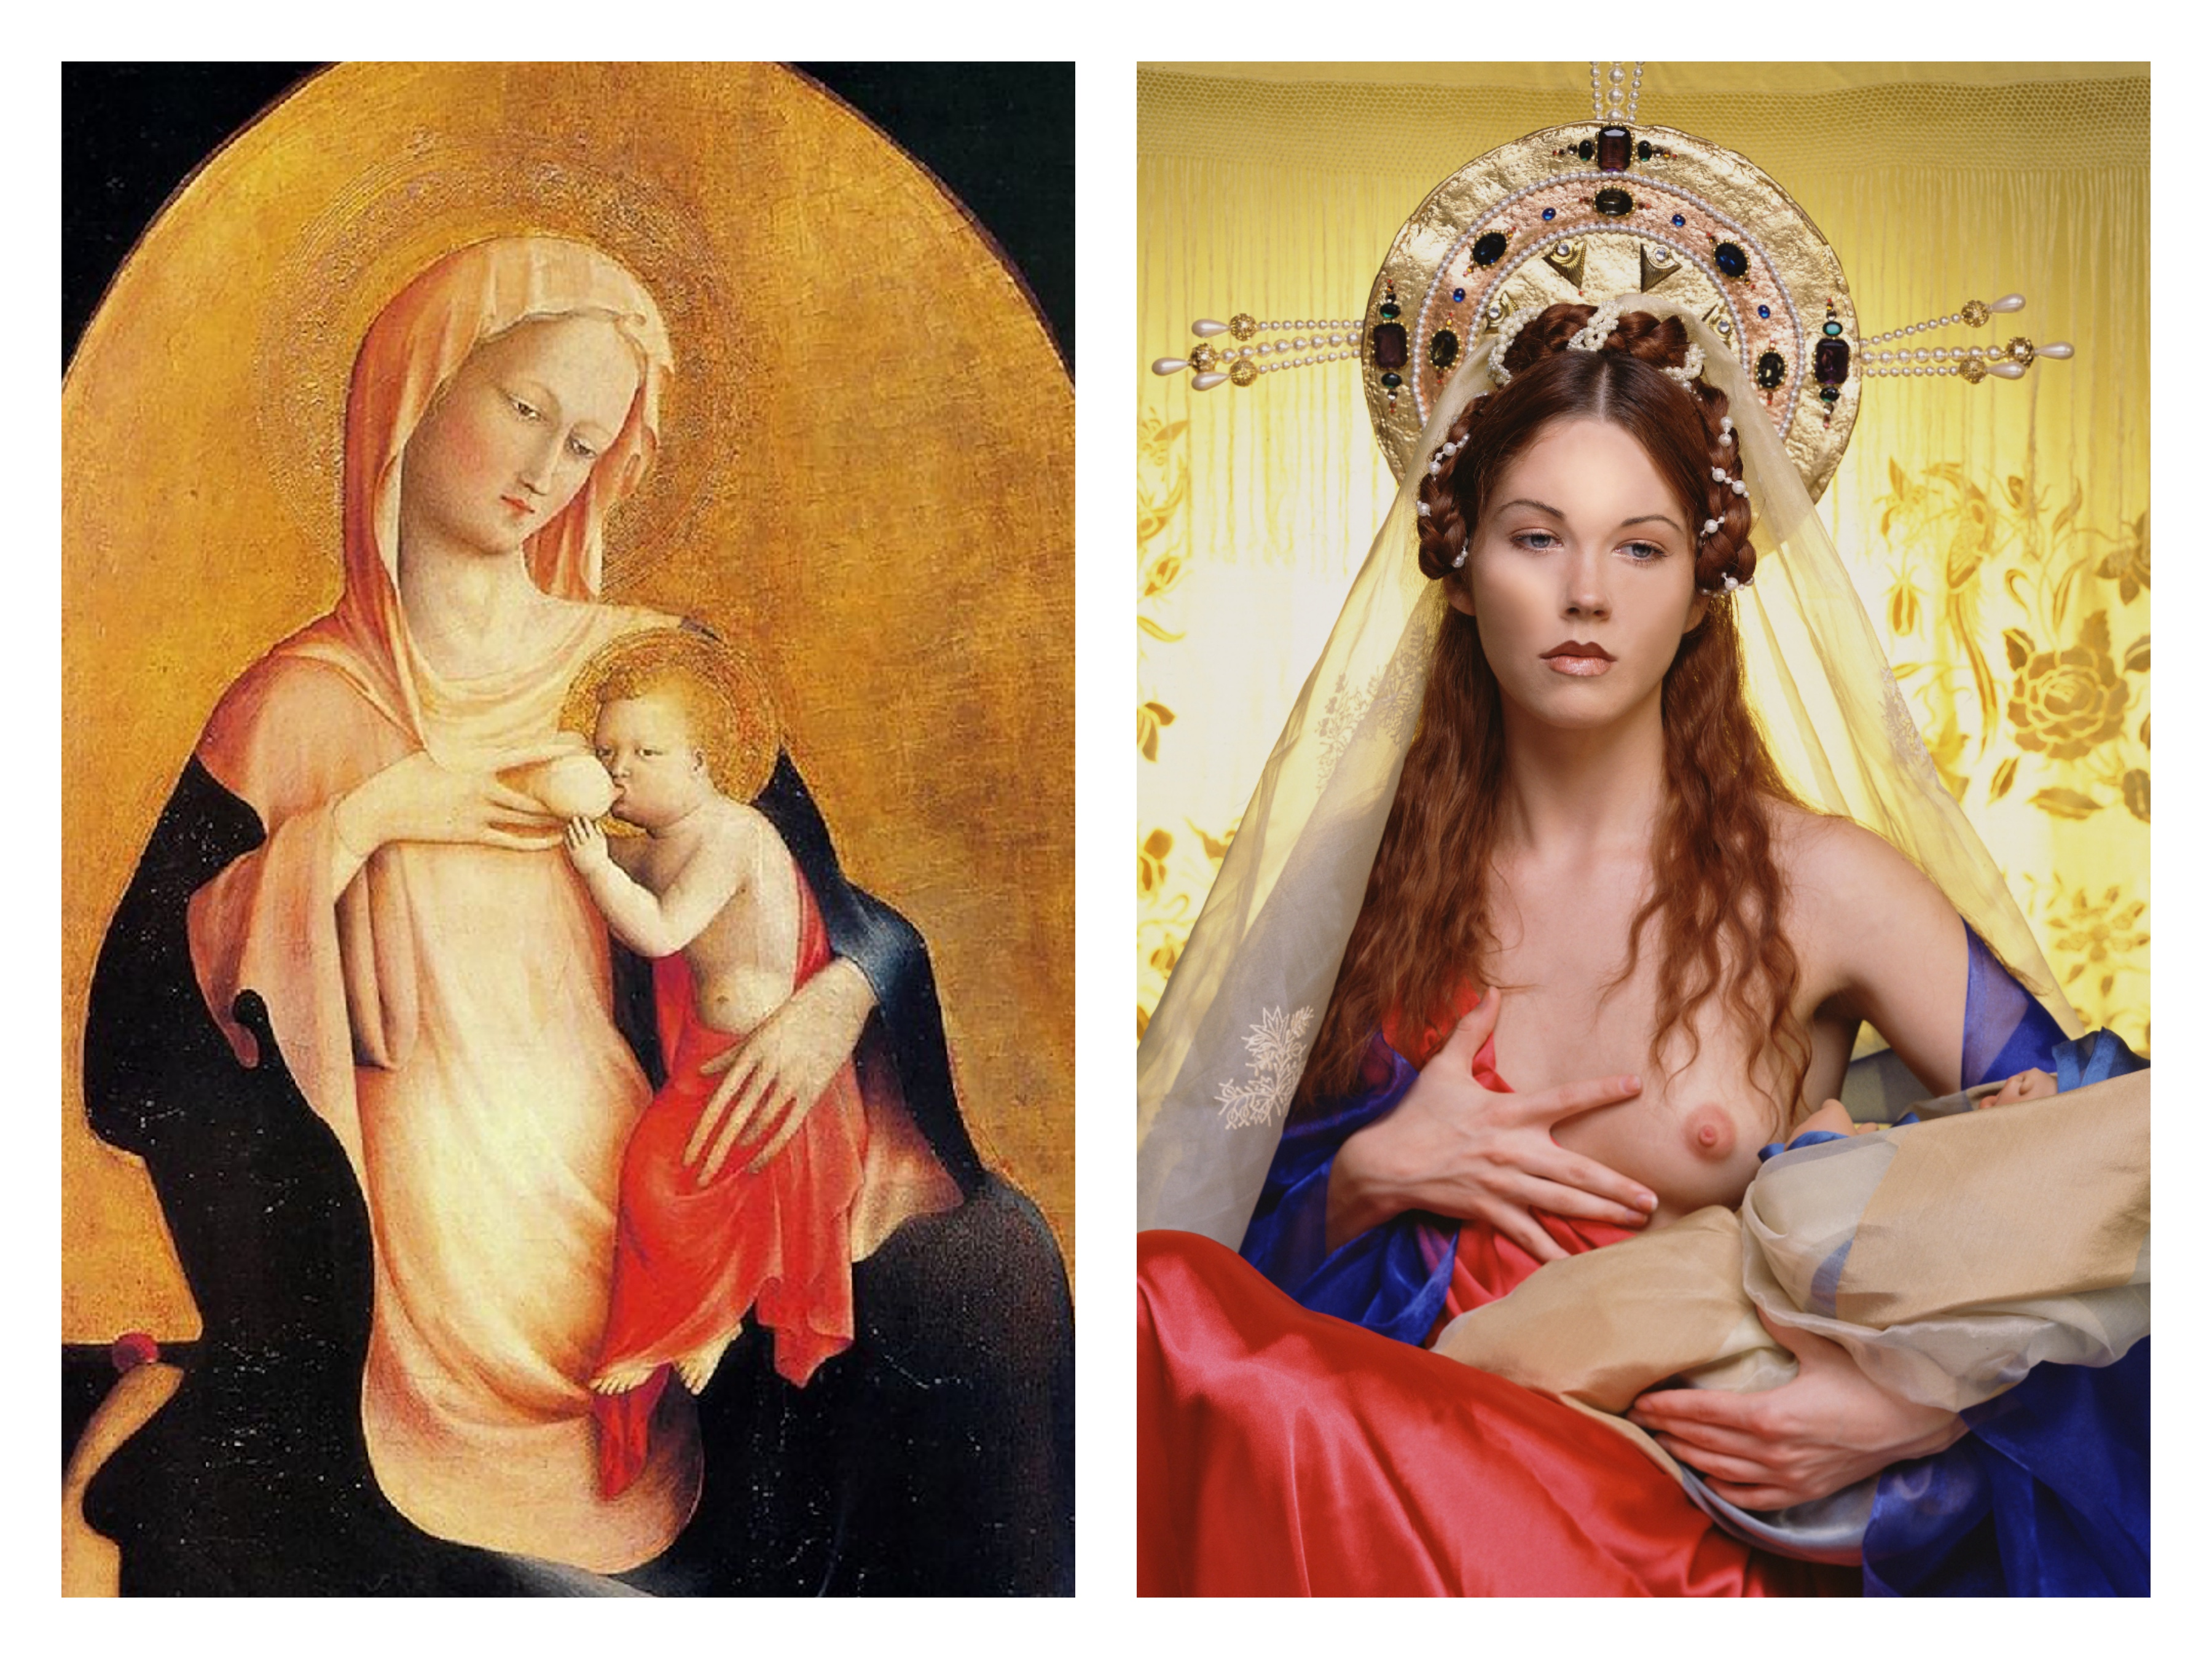 theological-meaning-of-marys-virginity-kisses-vagina